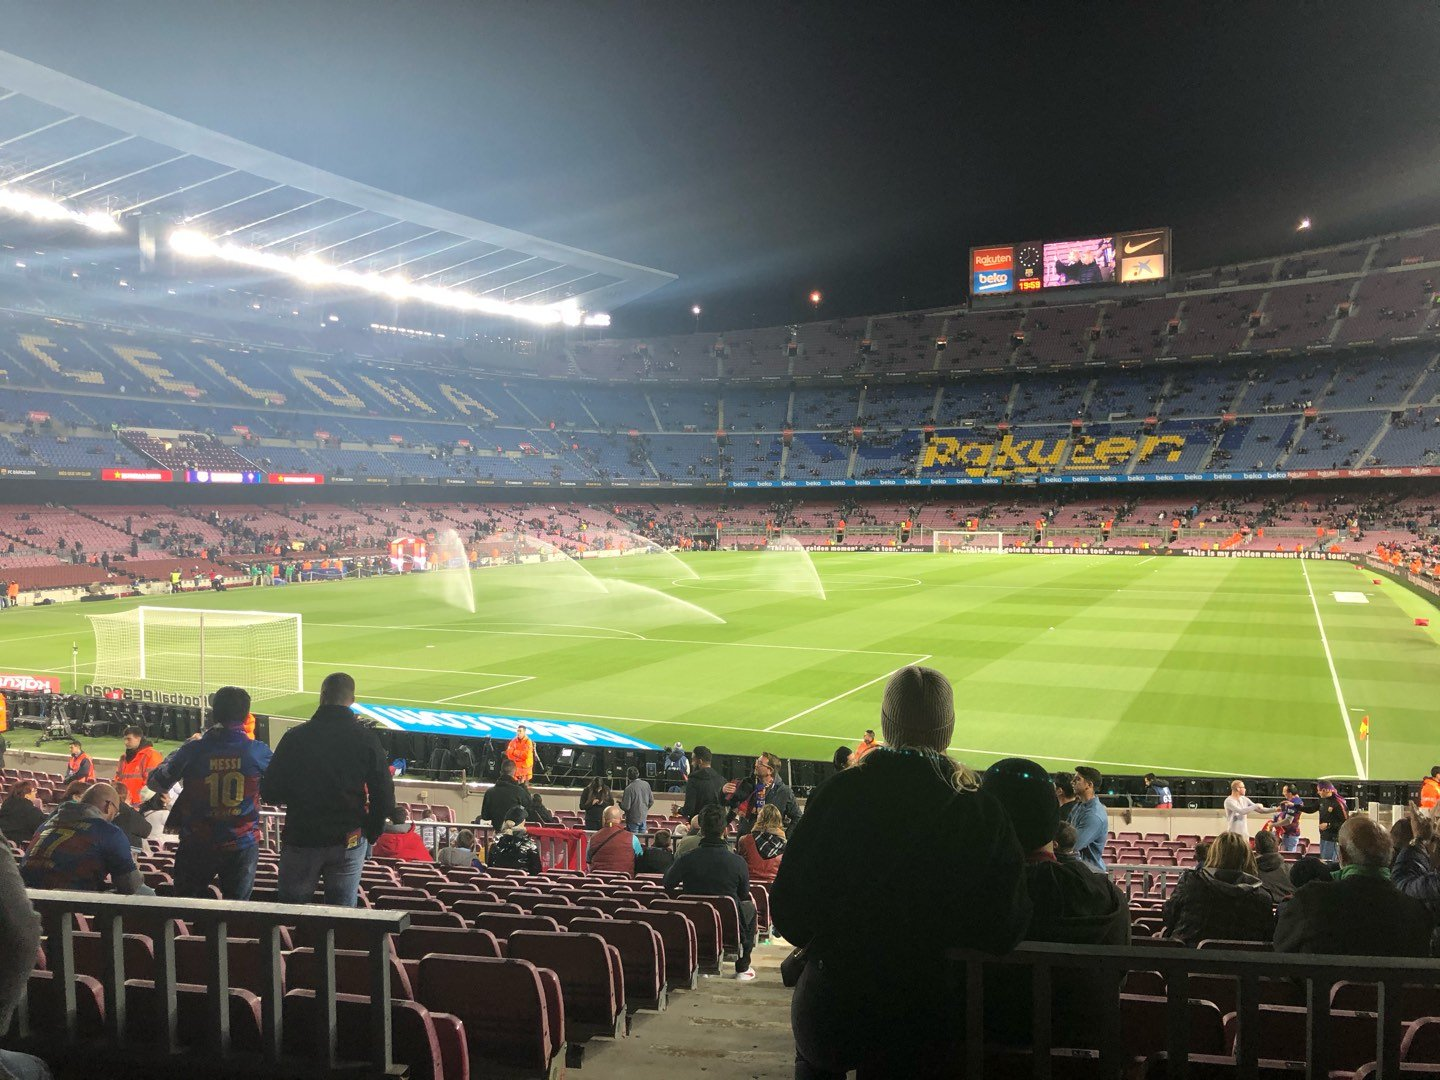 Camp Nou Section 123 Row 17 Seat 2